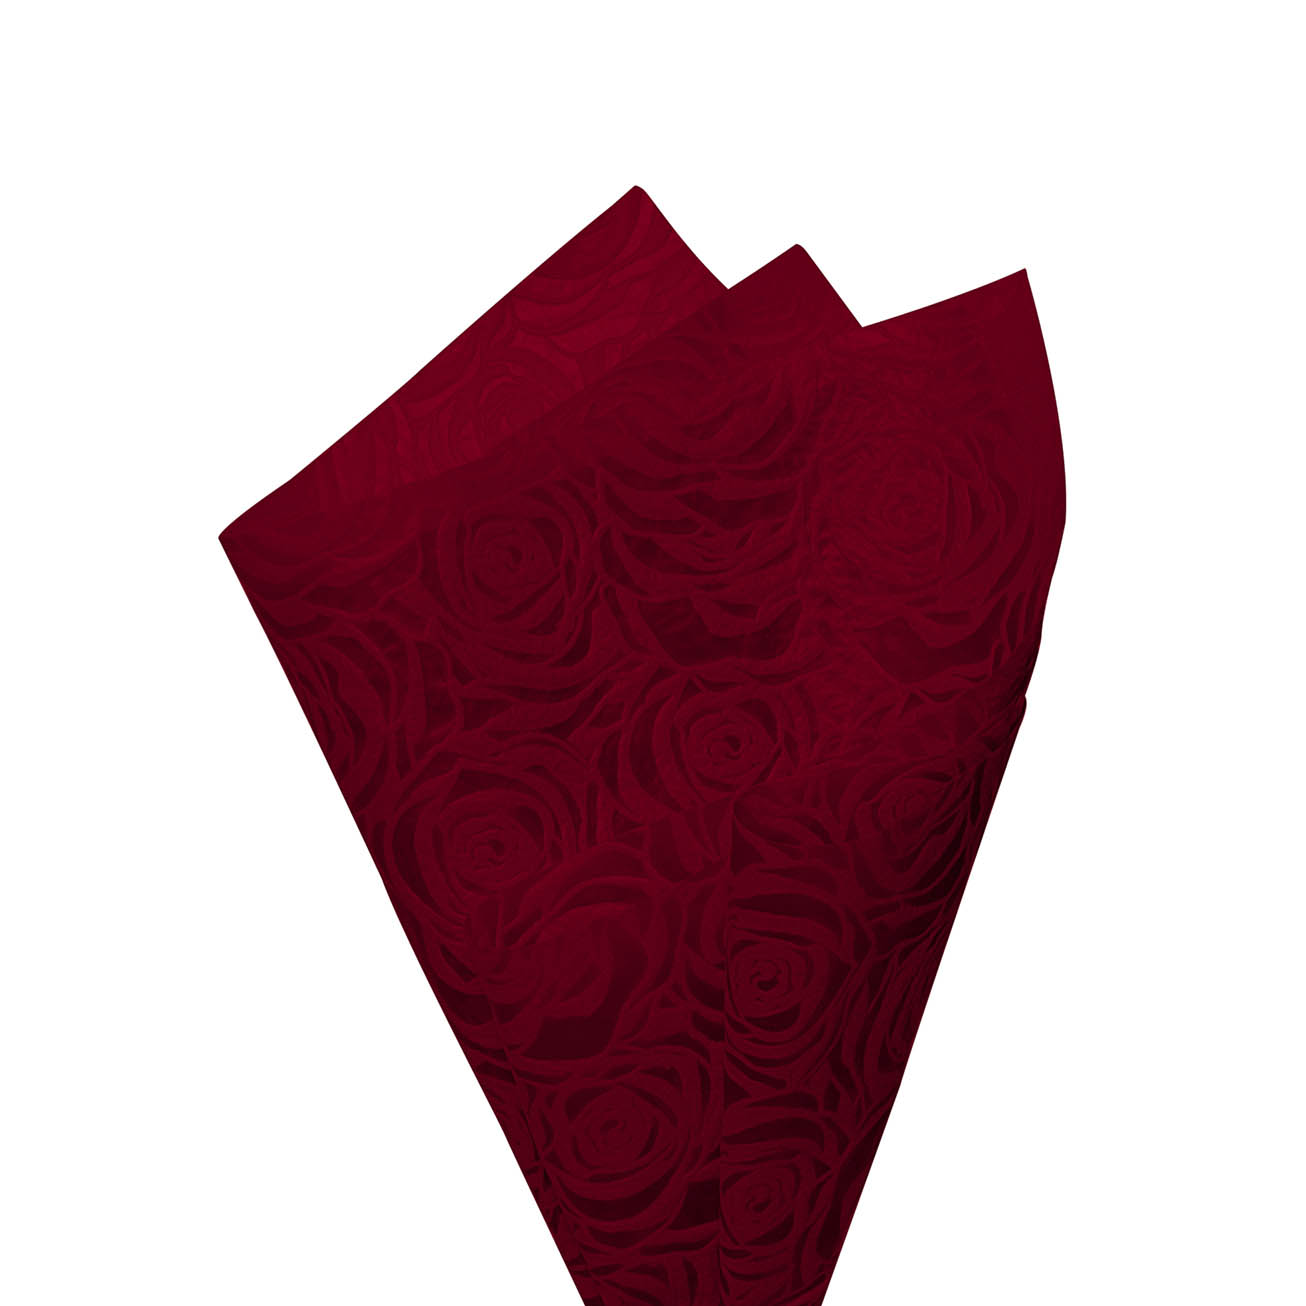 Printed Nonwoven Design - Nonwoven Wrap Floral 80gsm Deep Red (50x70cm) Pack 50